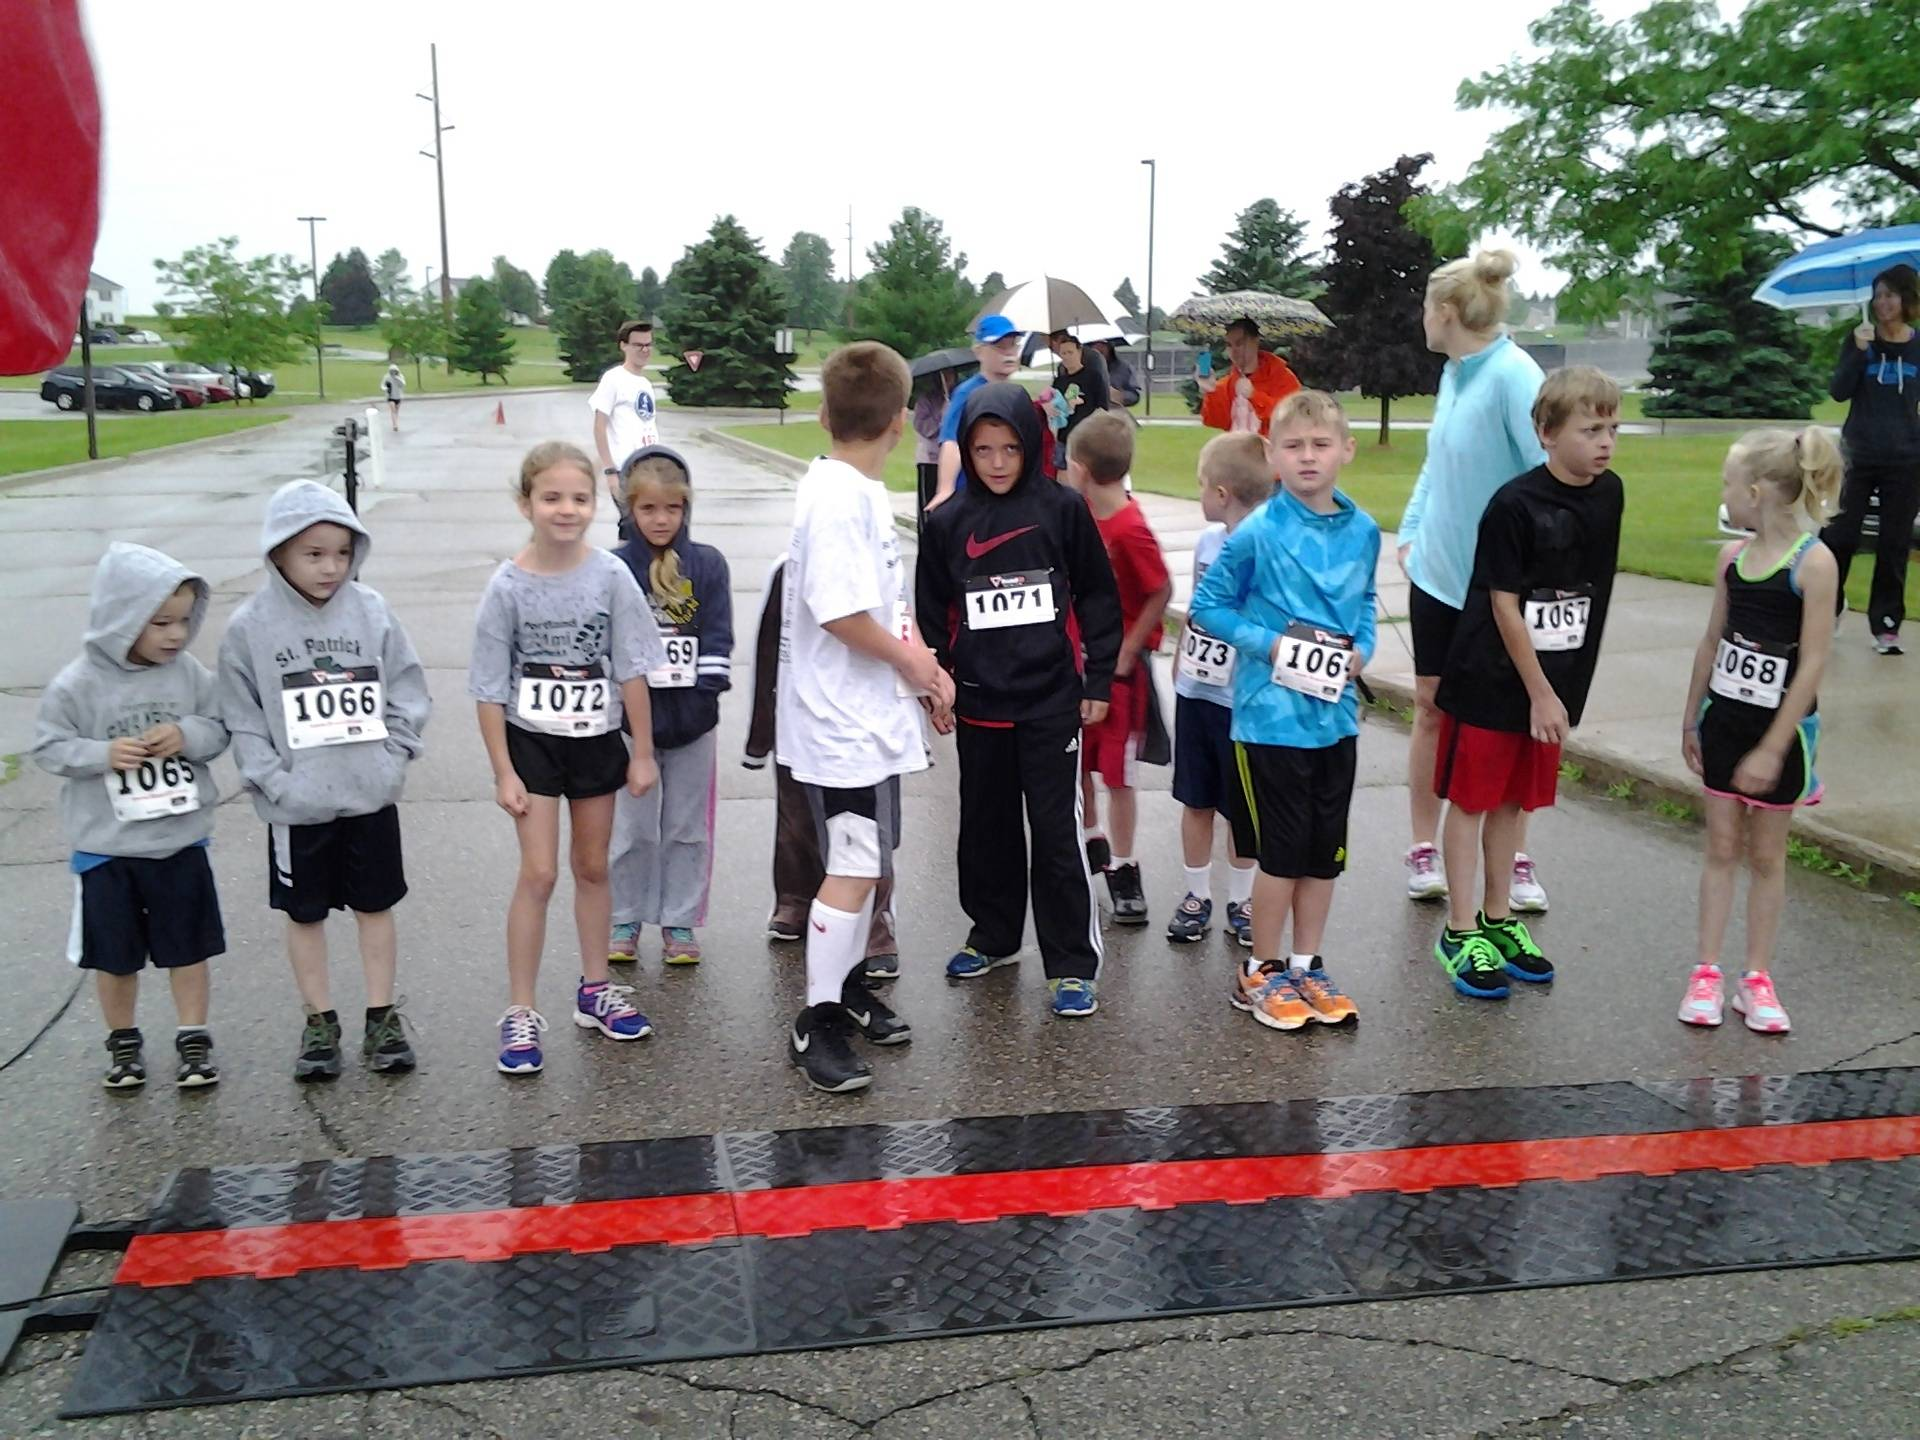 Kids lined up and ready for the Fun Run